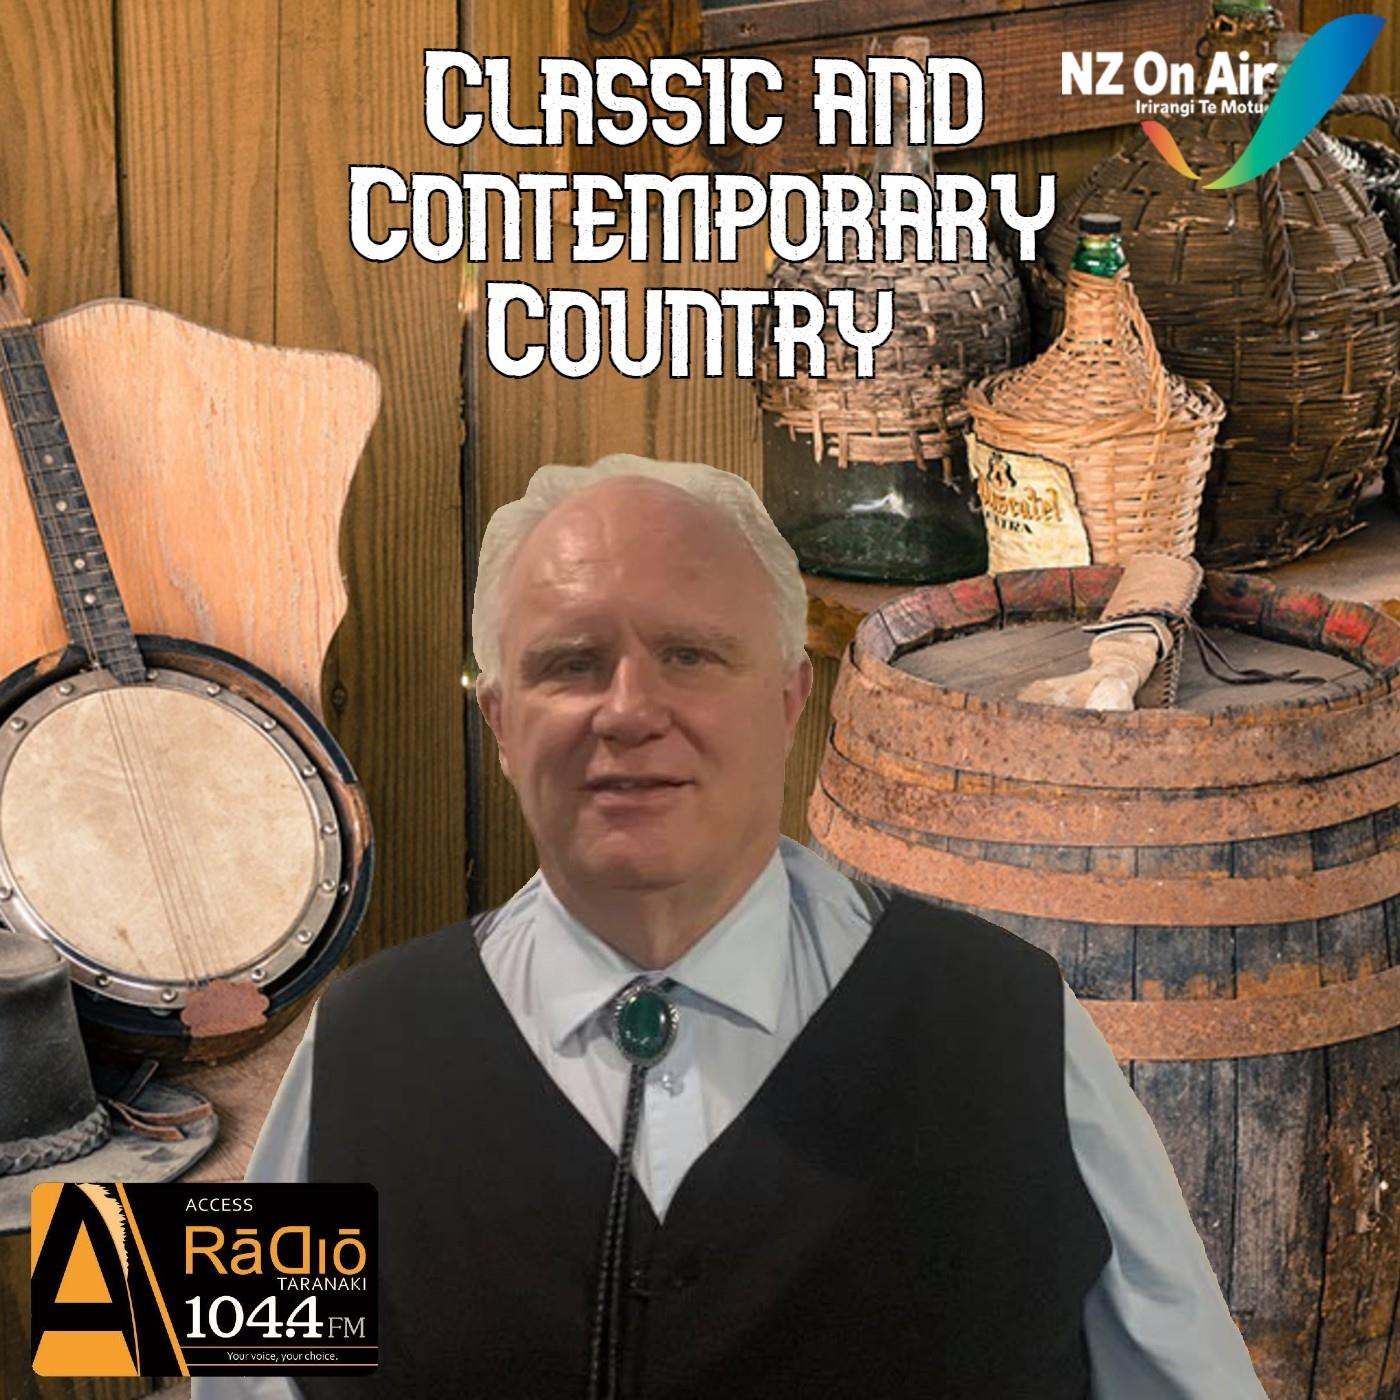 Classic and Contemporary Country 13-10-2021